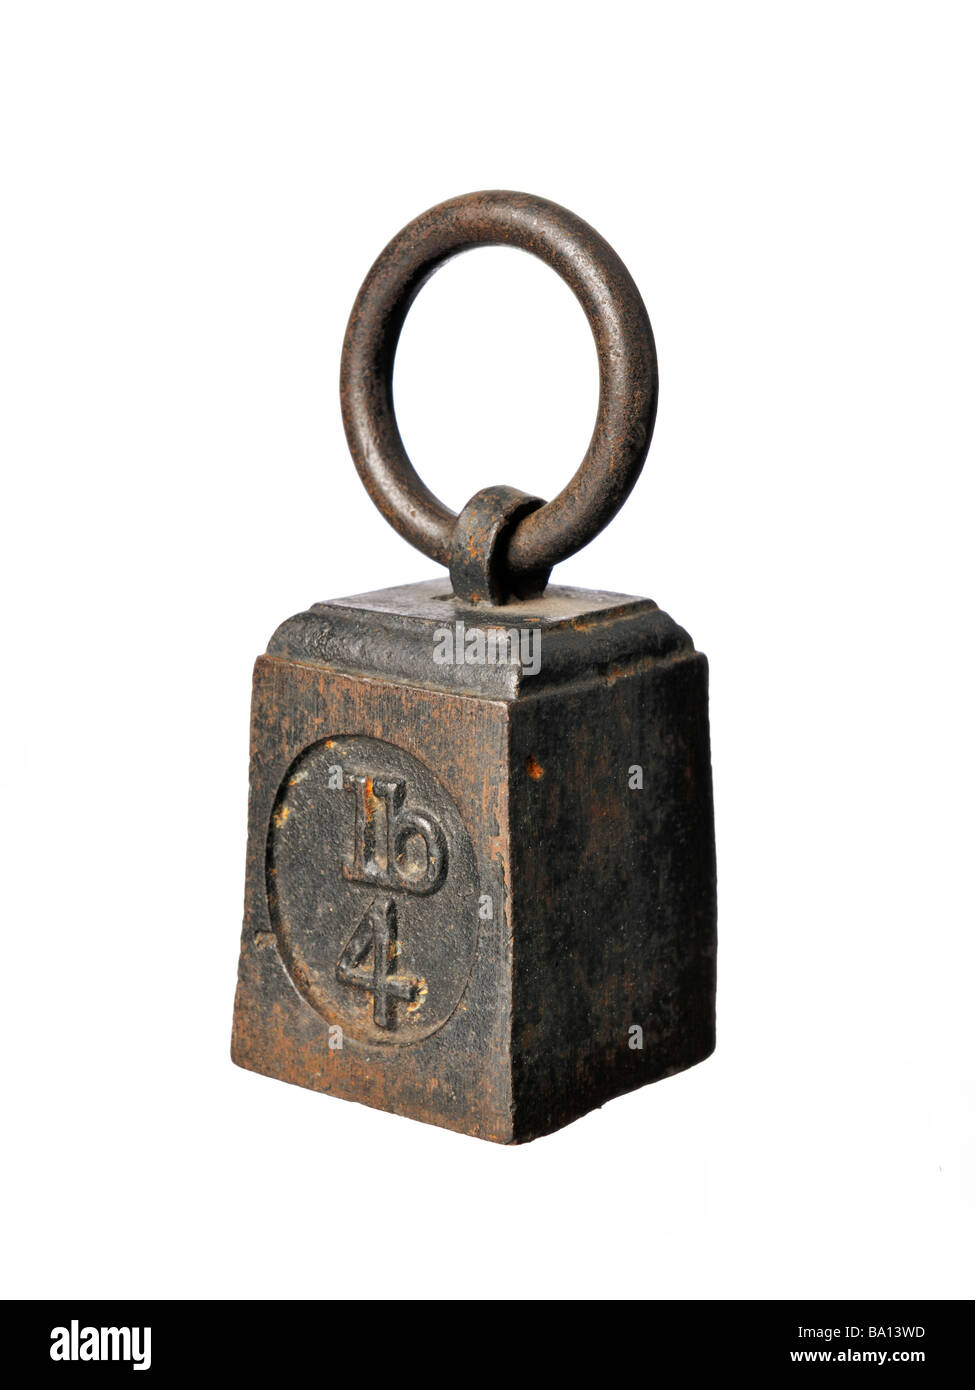 Old iron Imperial weights - Stock Image